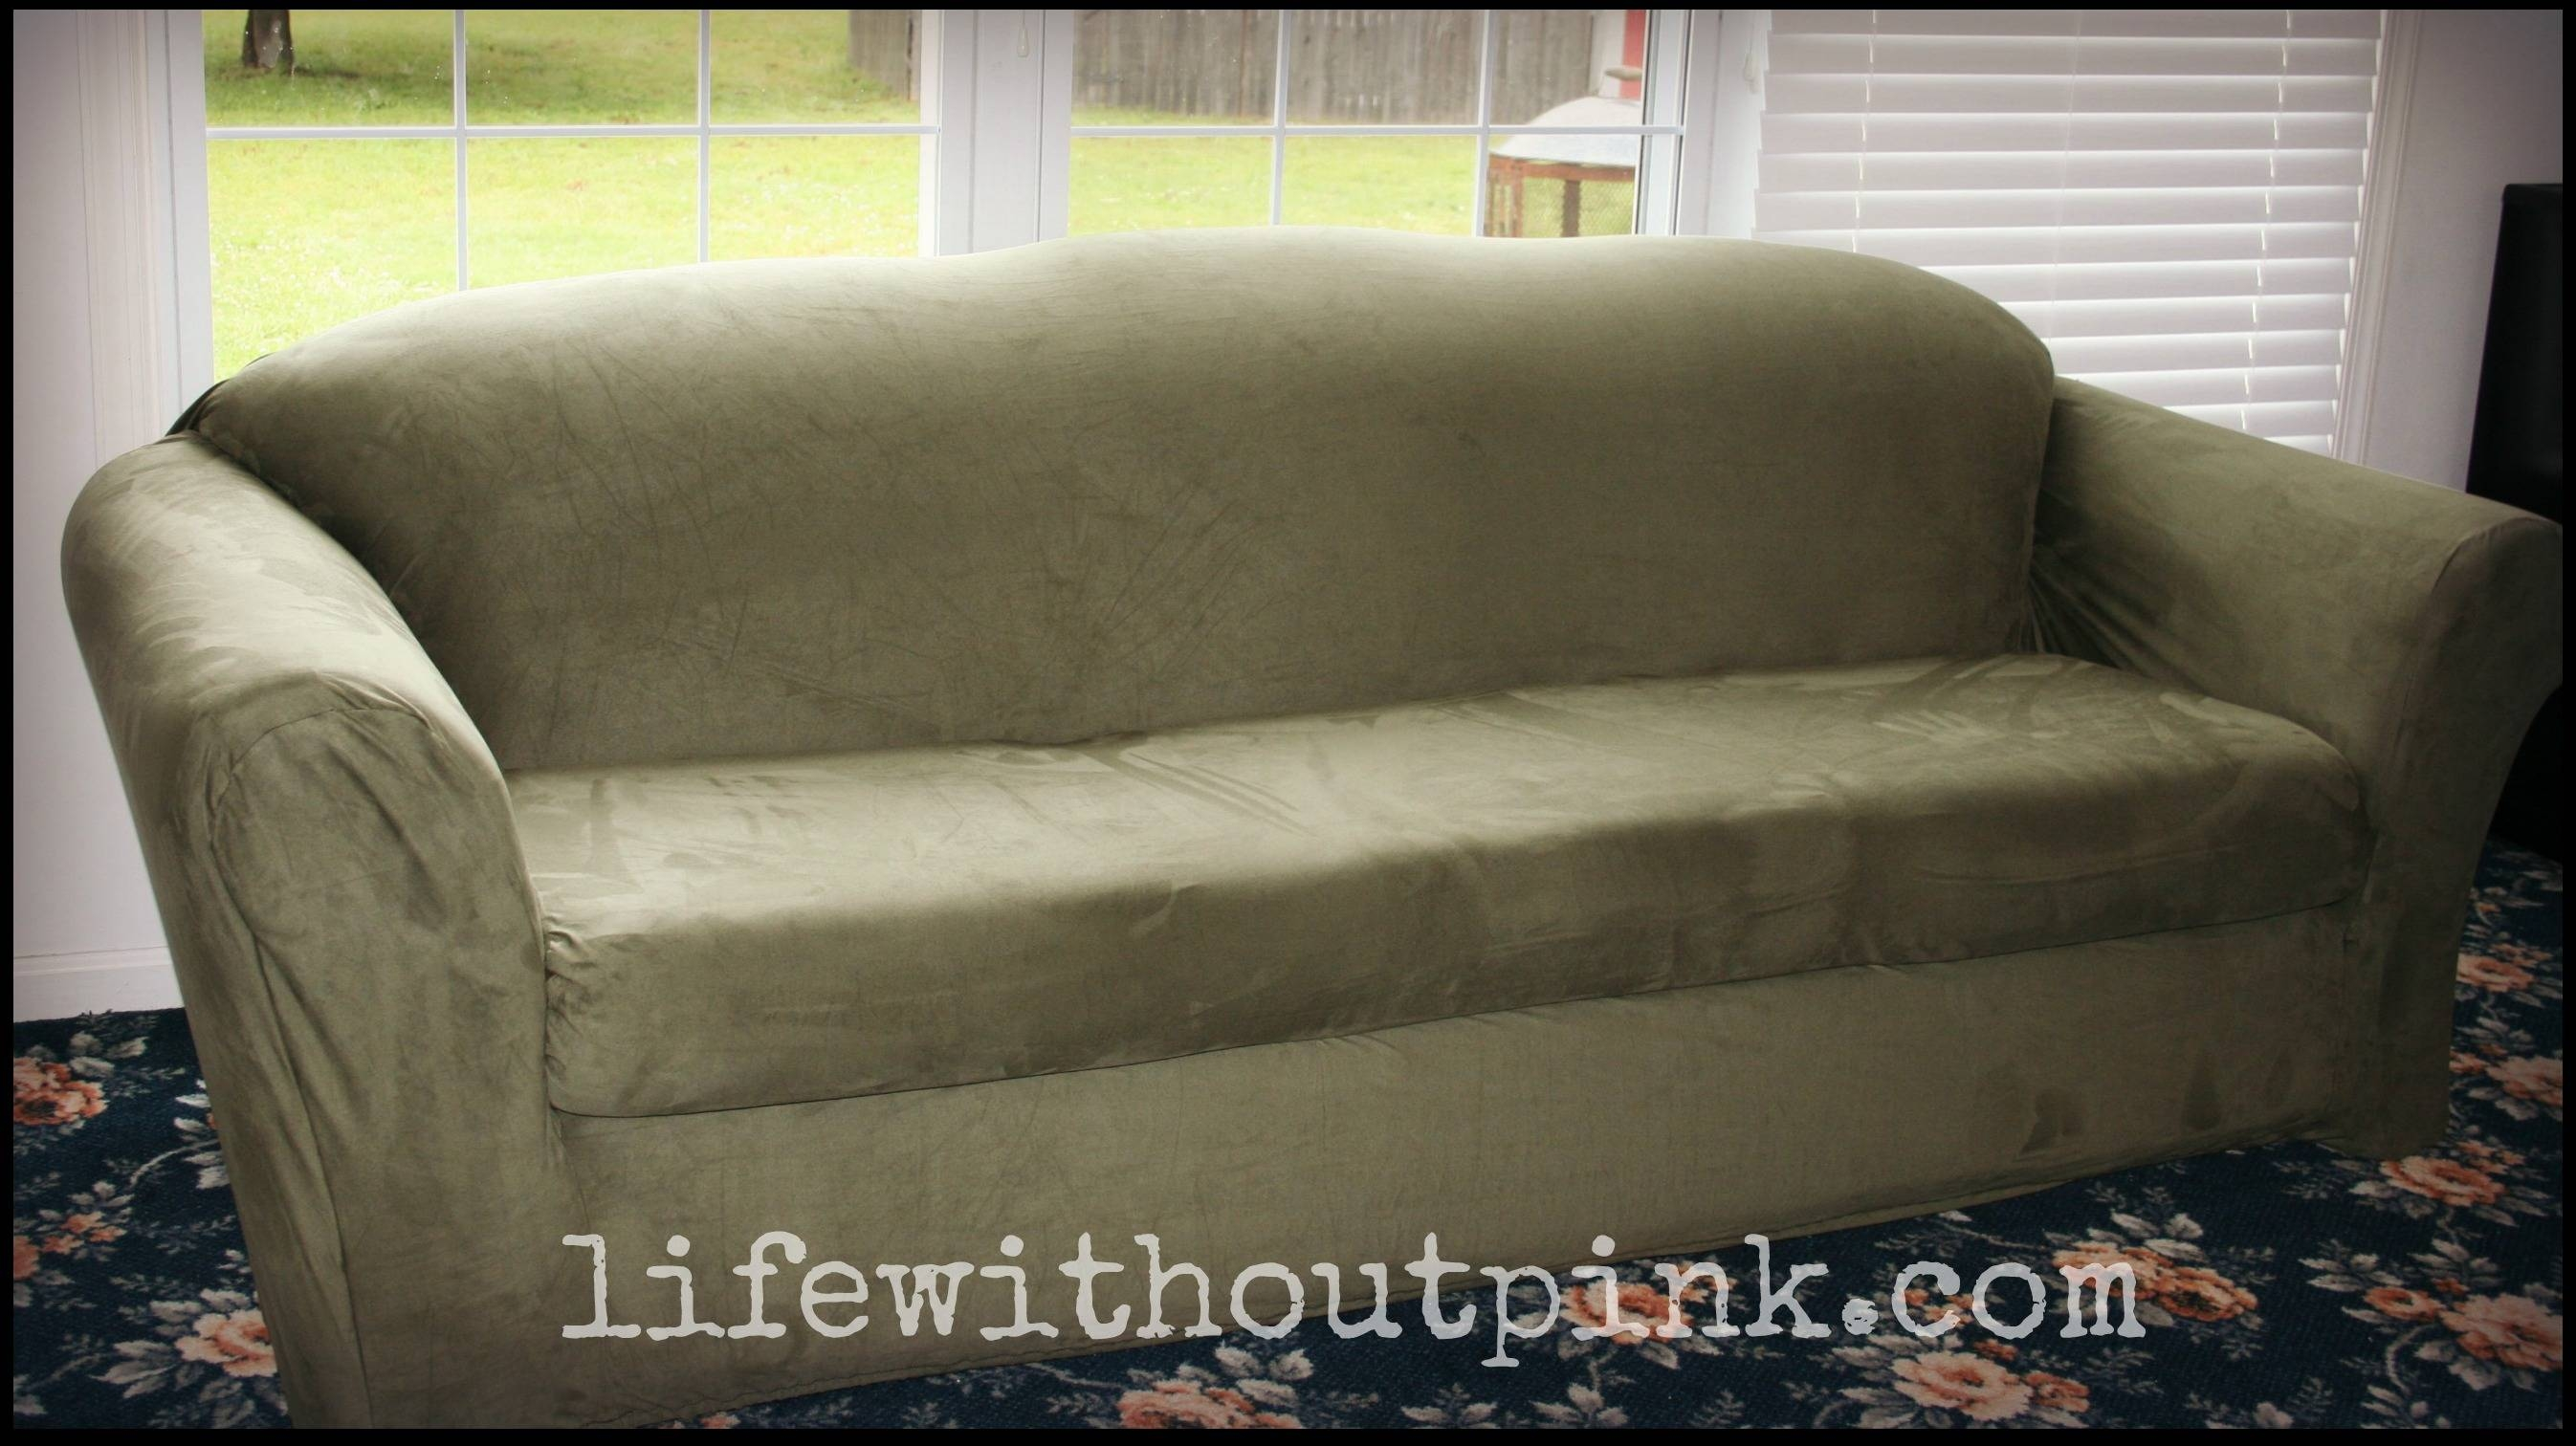 Sure Fit Slipcover Review {Video} | Life Without Pink pertaining to Stretch Slipcovers For Sofas (Image 11 of 15)